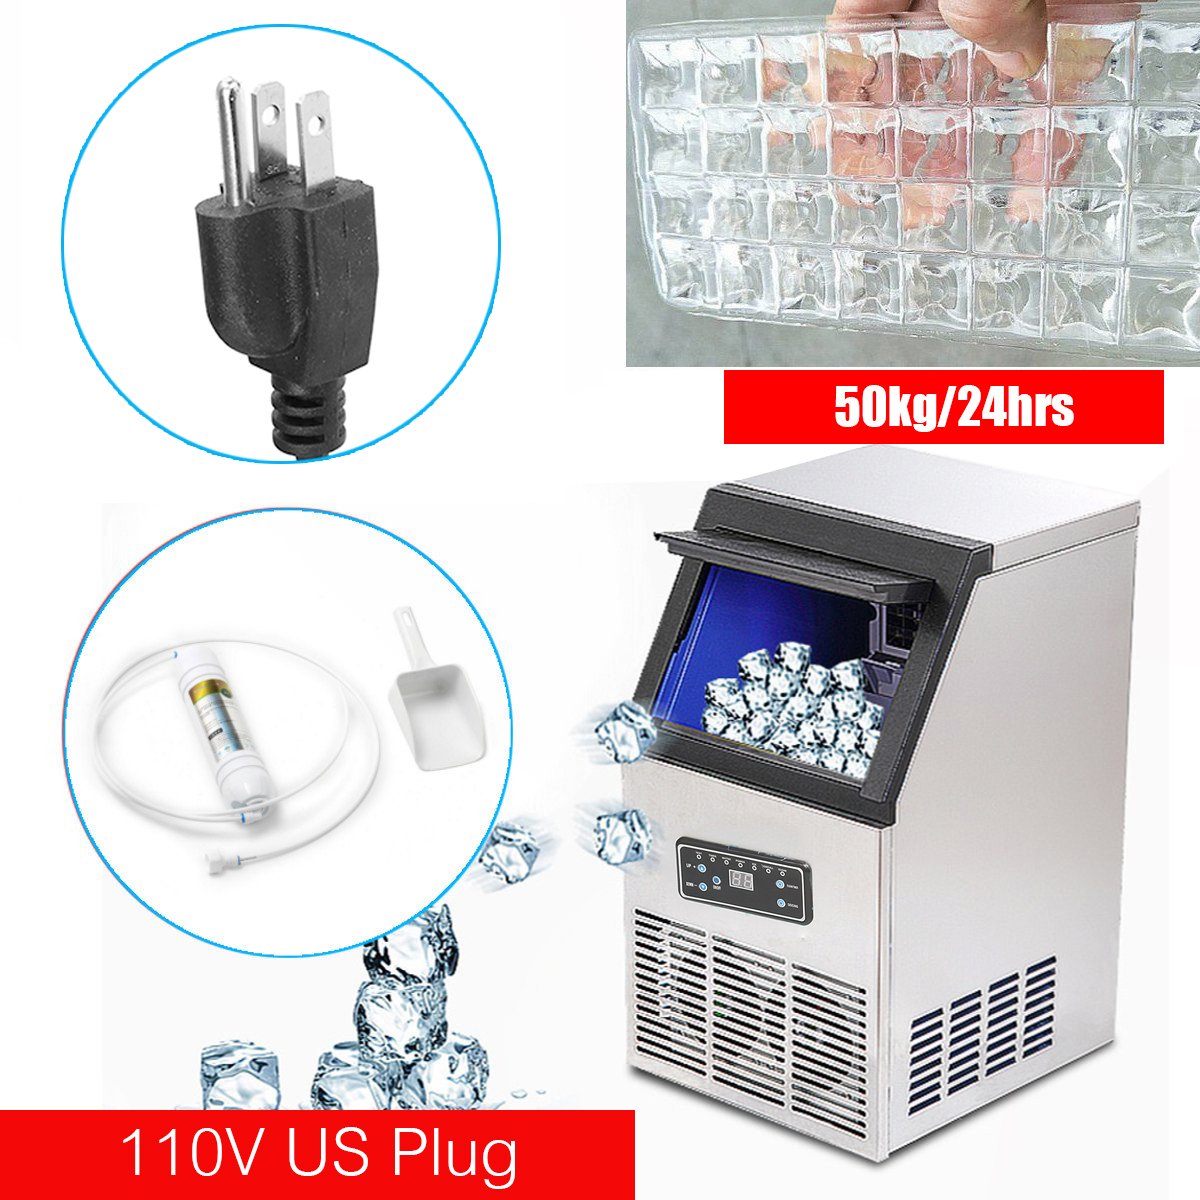 110Lbs Auto Commercial Ice Cube Maker Machine Stainless Steel Bar 110V 230W US Plug